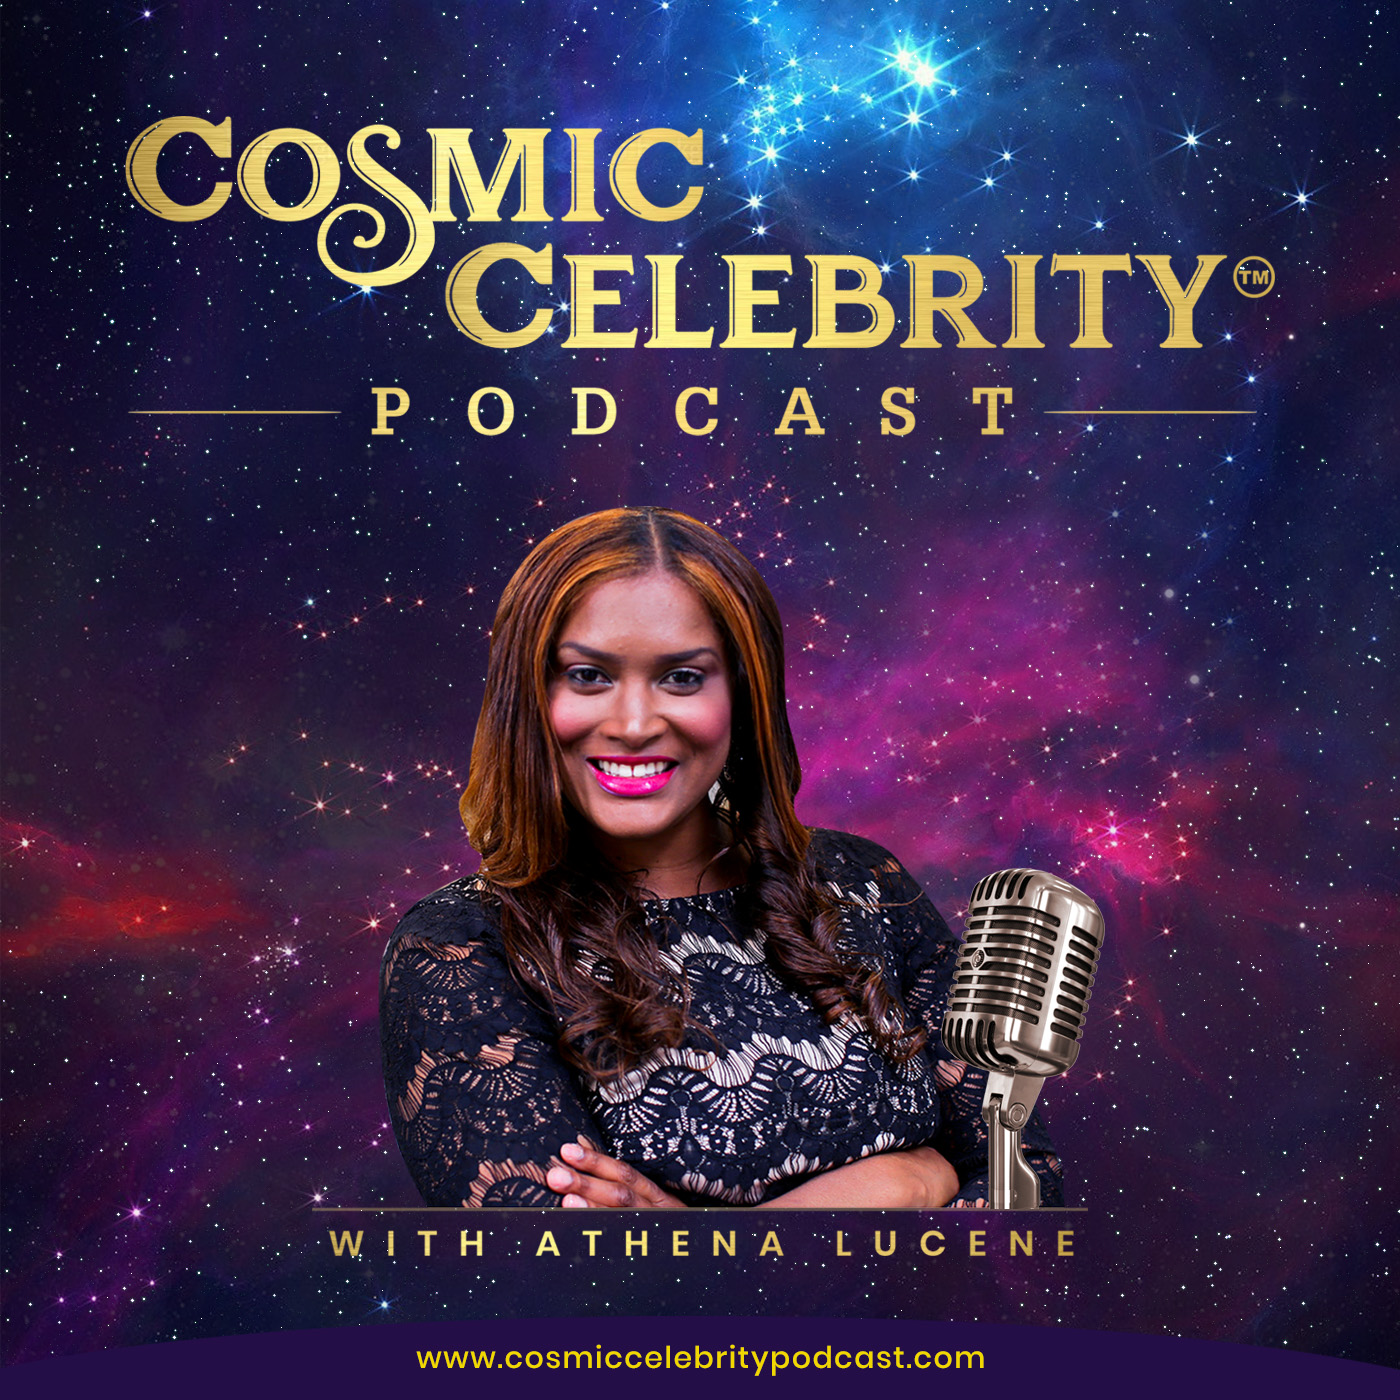 Cosmic Celebrity Podcast: Consciousness Awakening Tips for The Spiritually Gifted